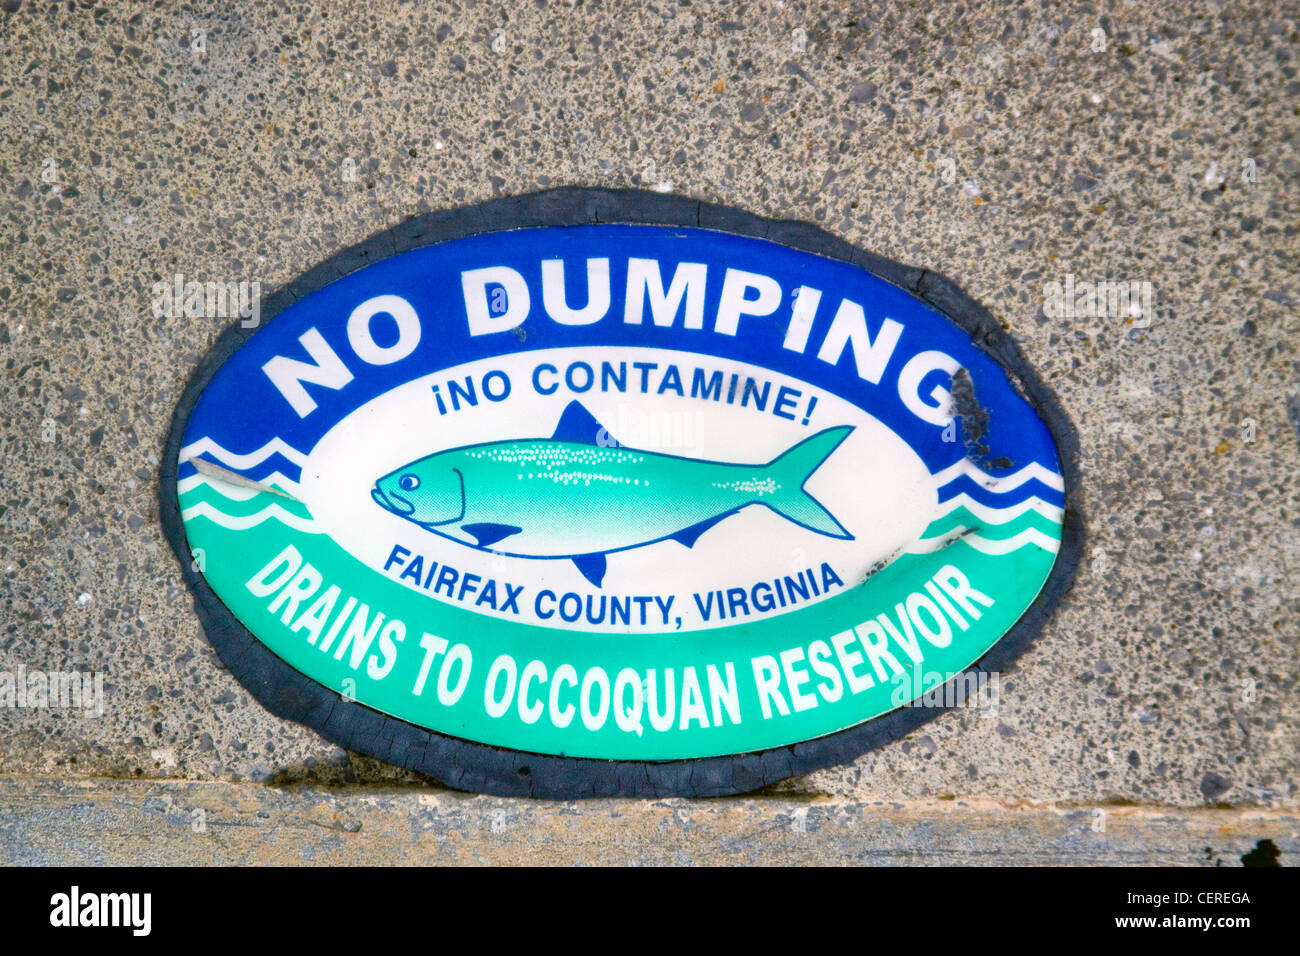 Fairfax County Virginia No Dumping Drains to Occoquan Reservor sign top of a storm water drainage catch basin inlet - Stock Image